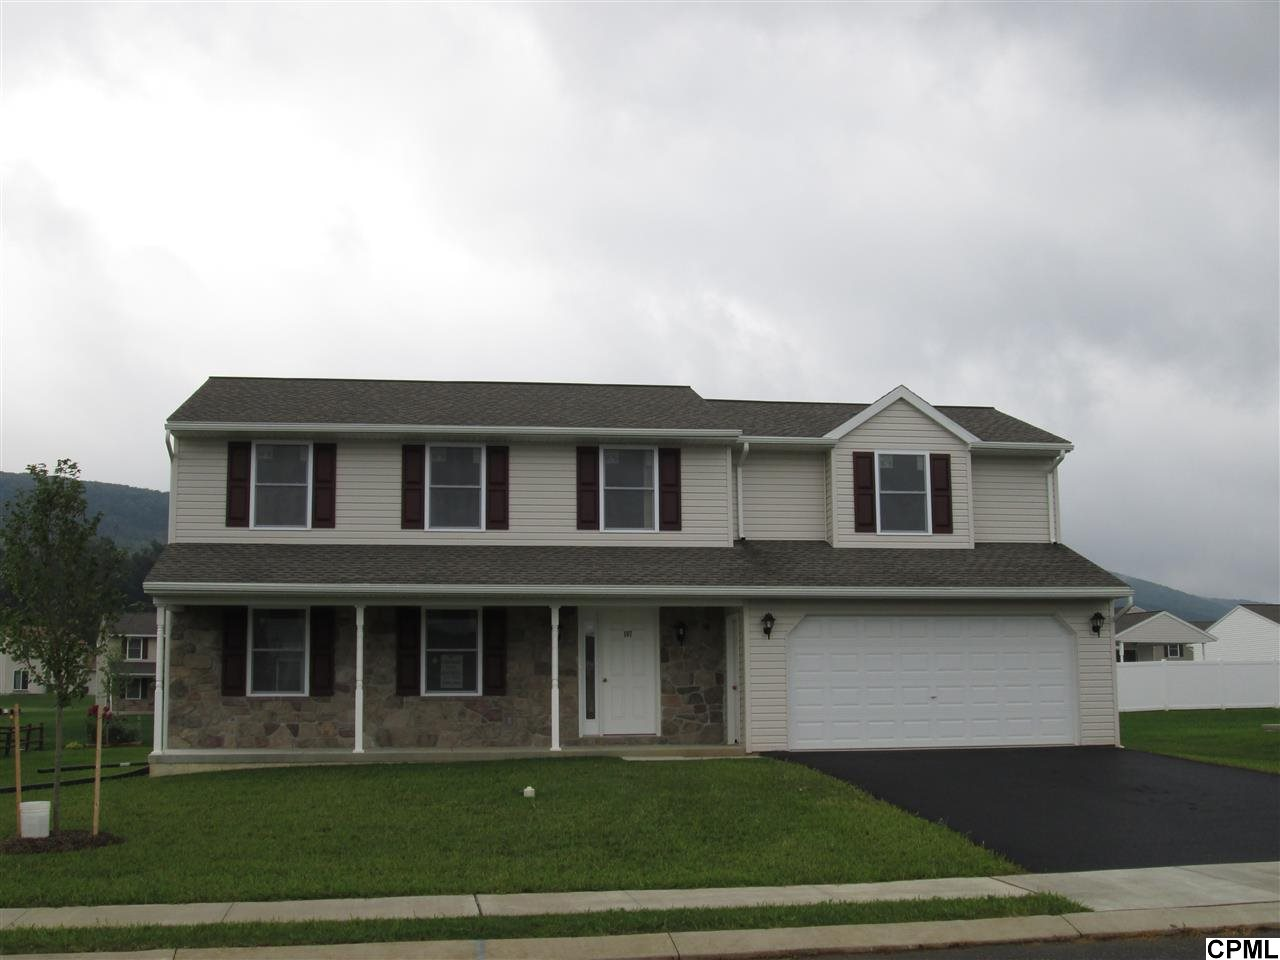 107 Edgemont Ln, Newmanstown, PA 17073